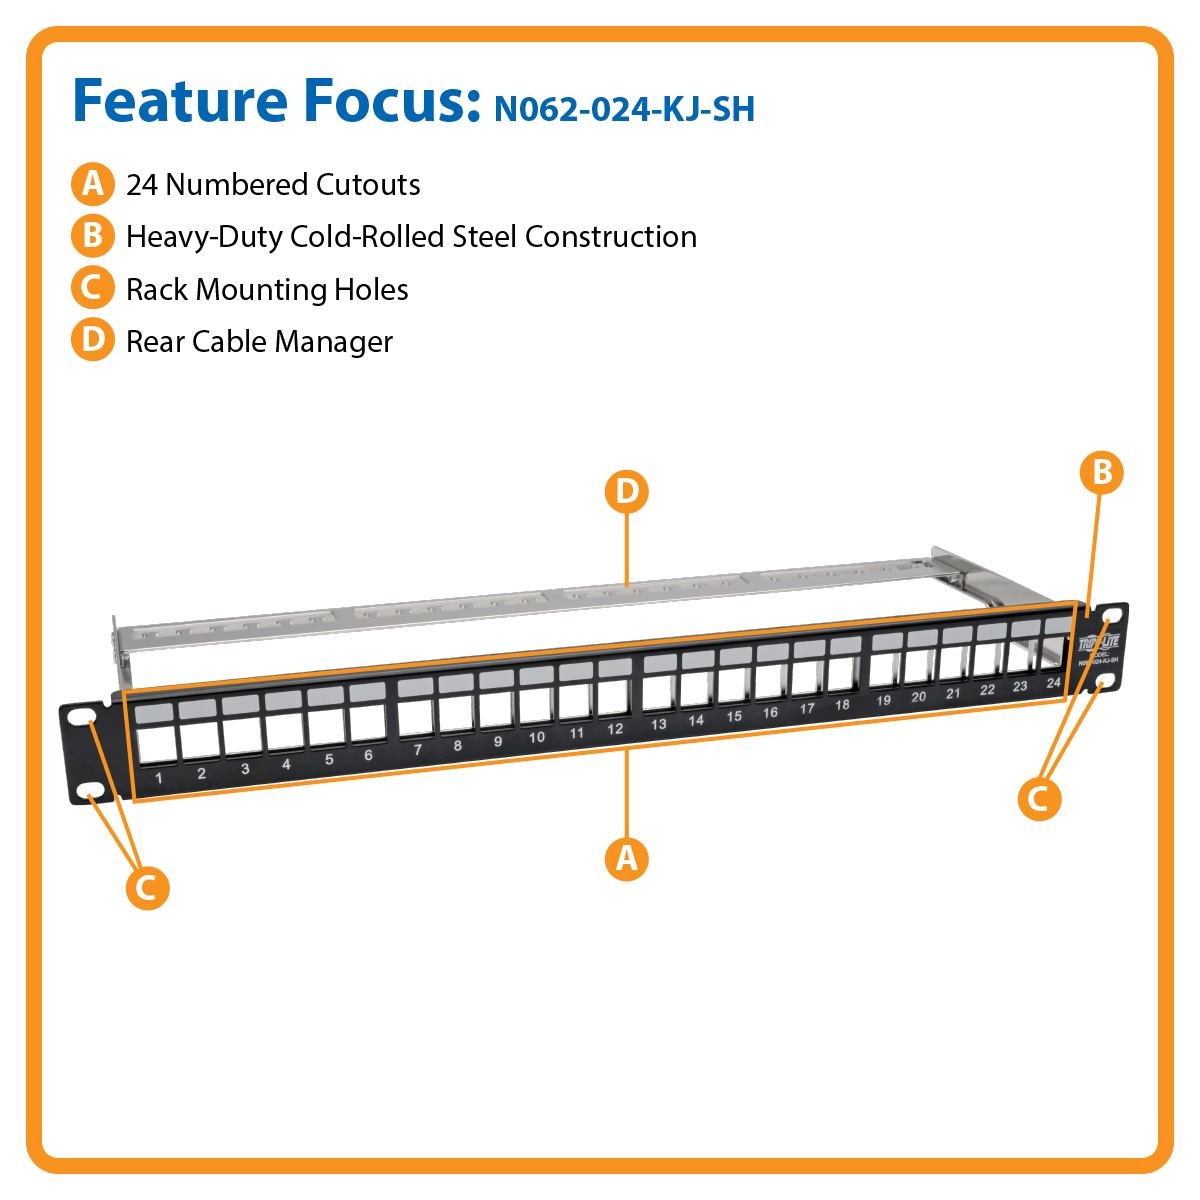 Tripp Lite 24 Port Shielded Blank Patch Panel Rj45 Usb Hdmi Cat5e Wiring Diagram On Cat 5e Ether Cable Manages And Organizes Up To Network Connections